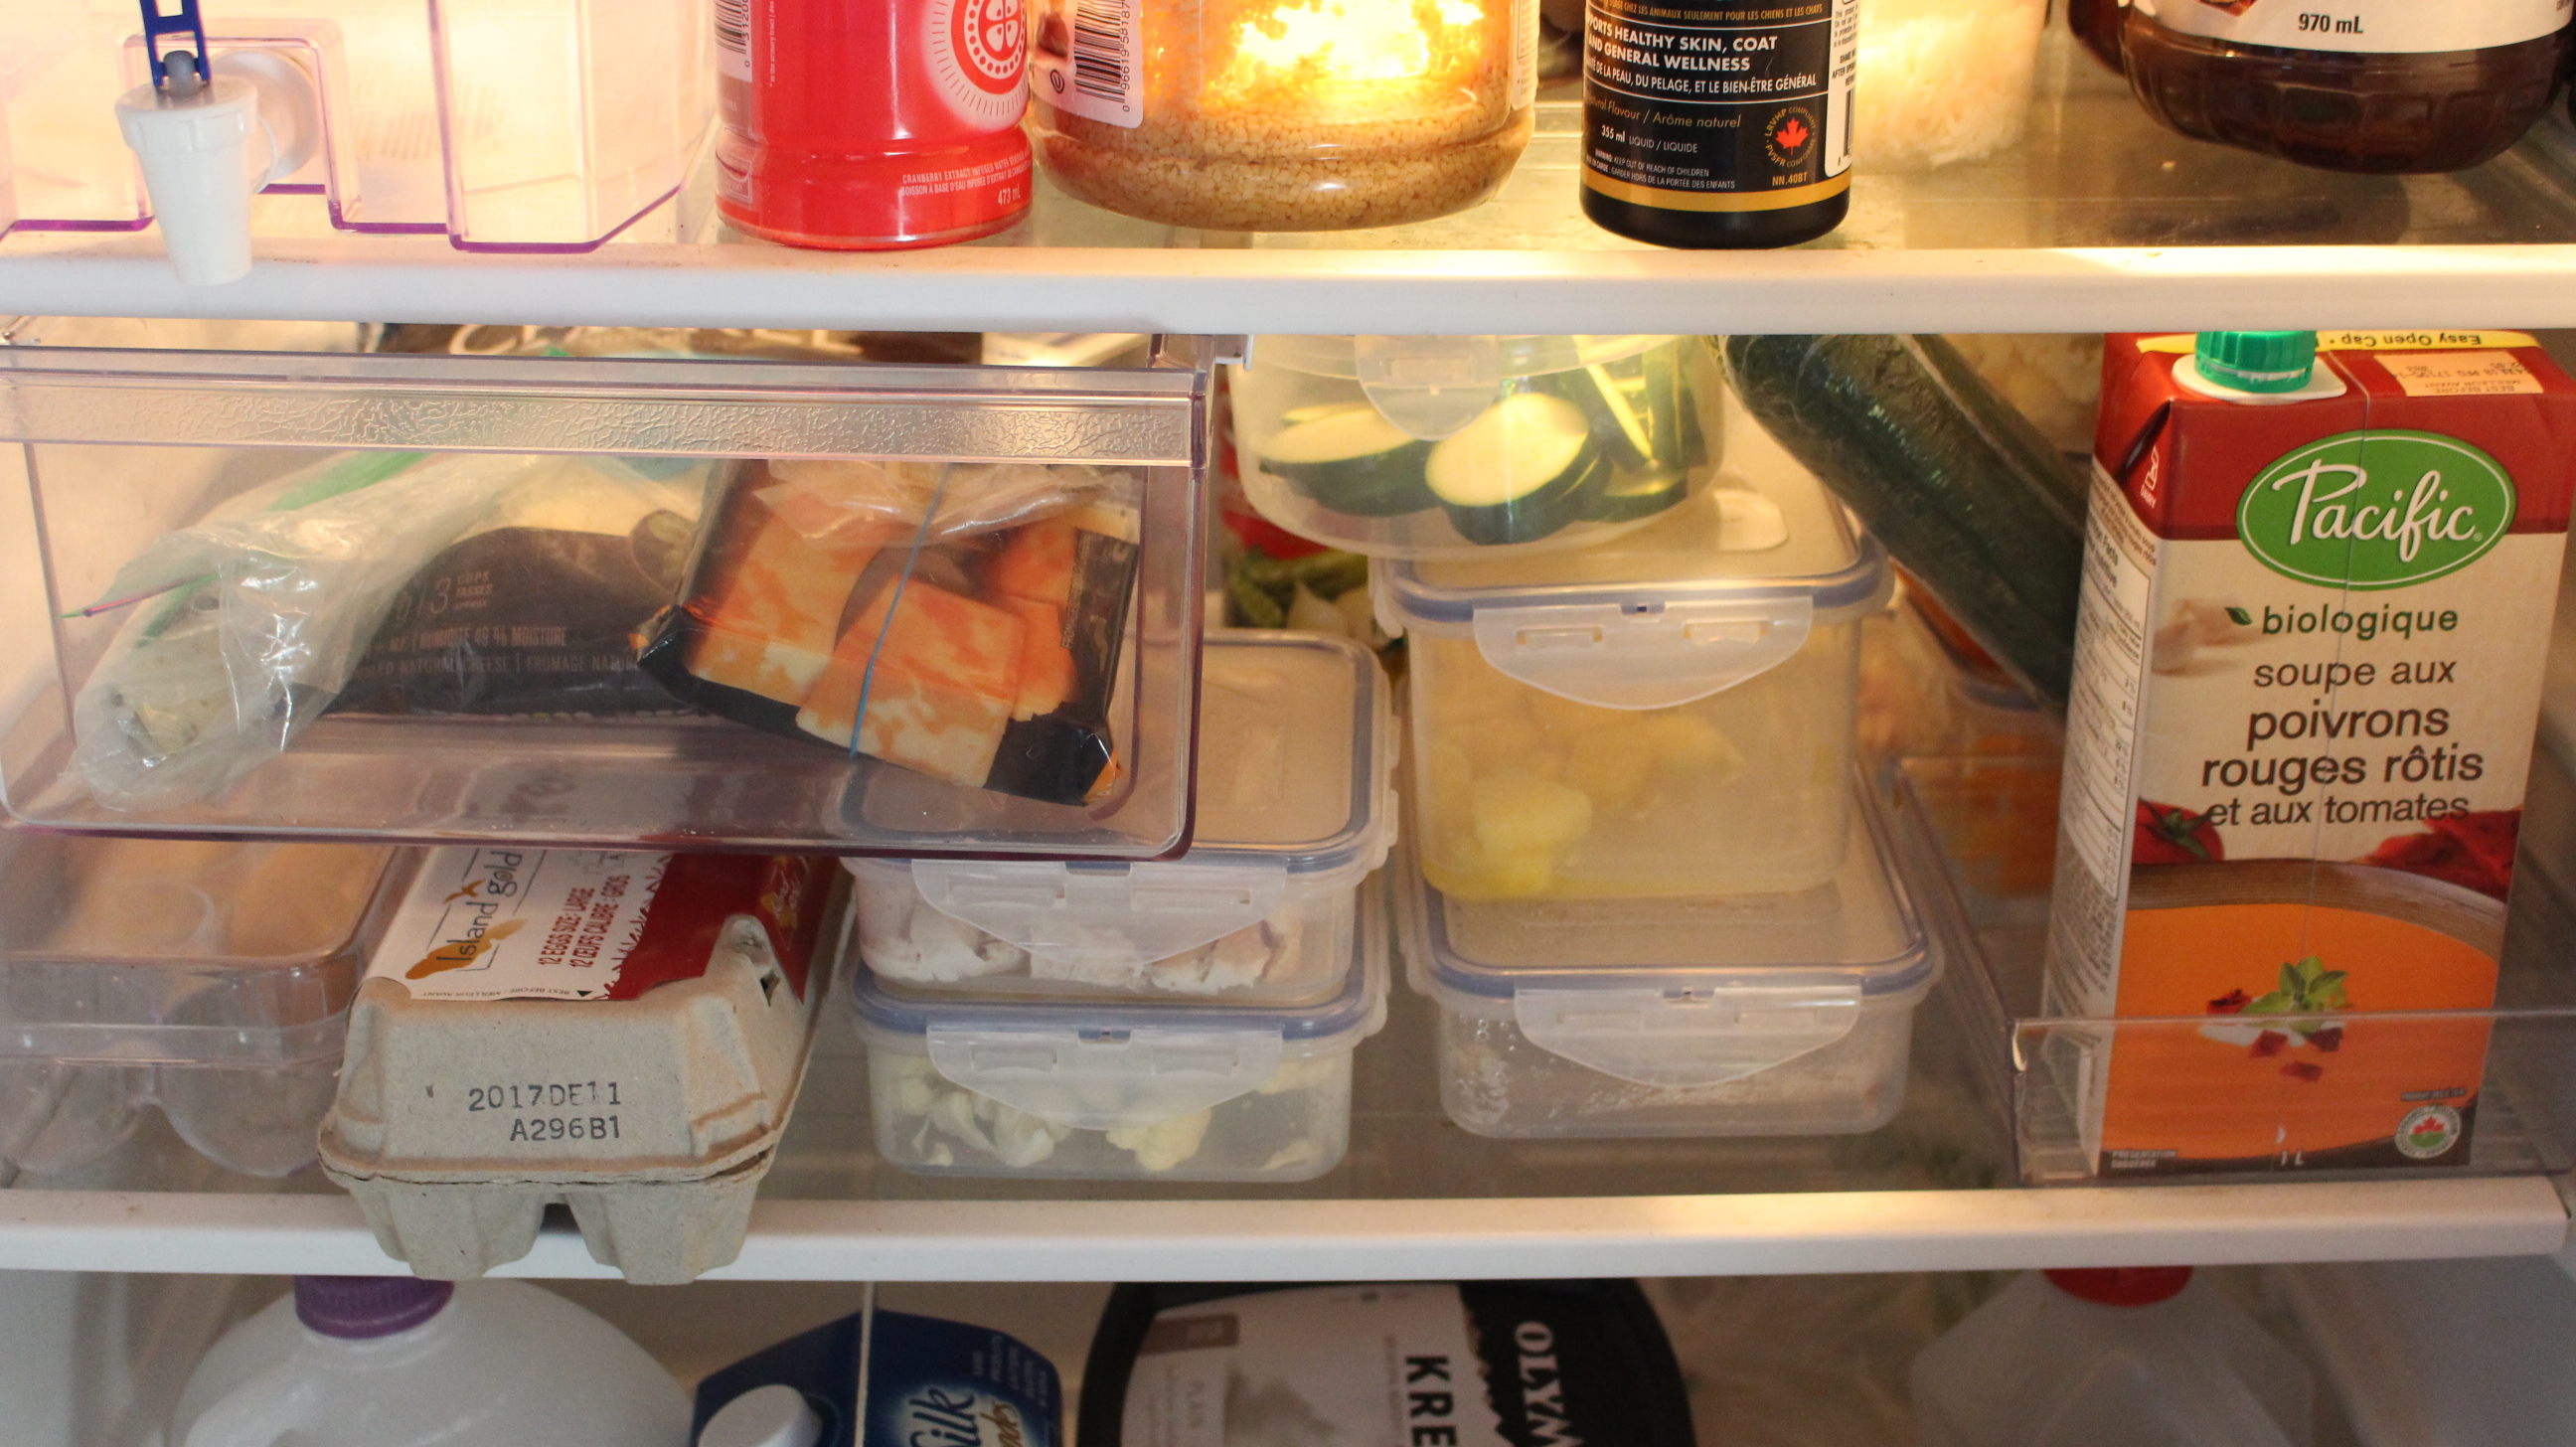 Avoid food waste with some planning and proper food storage.